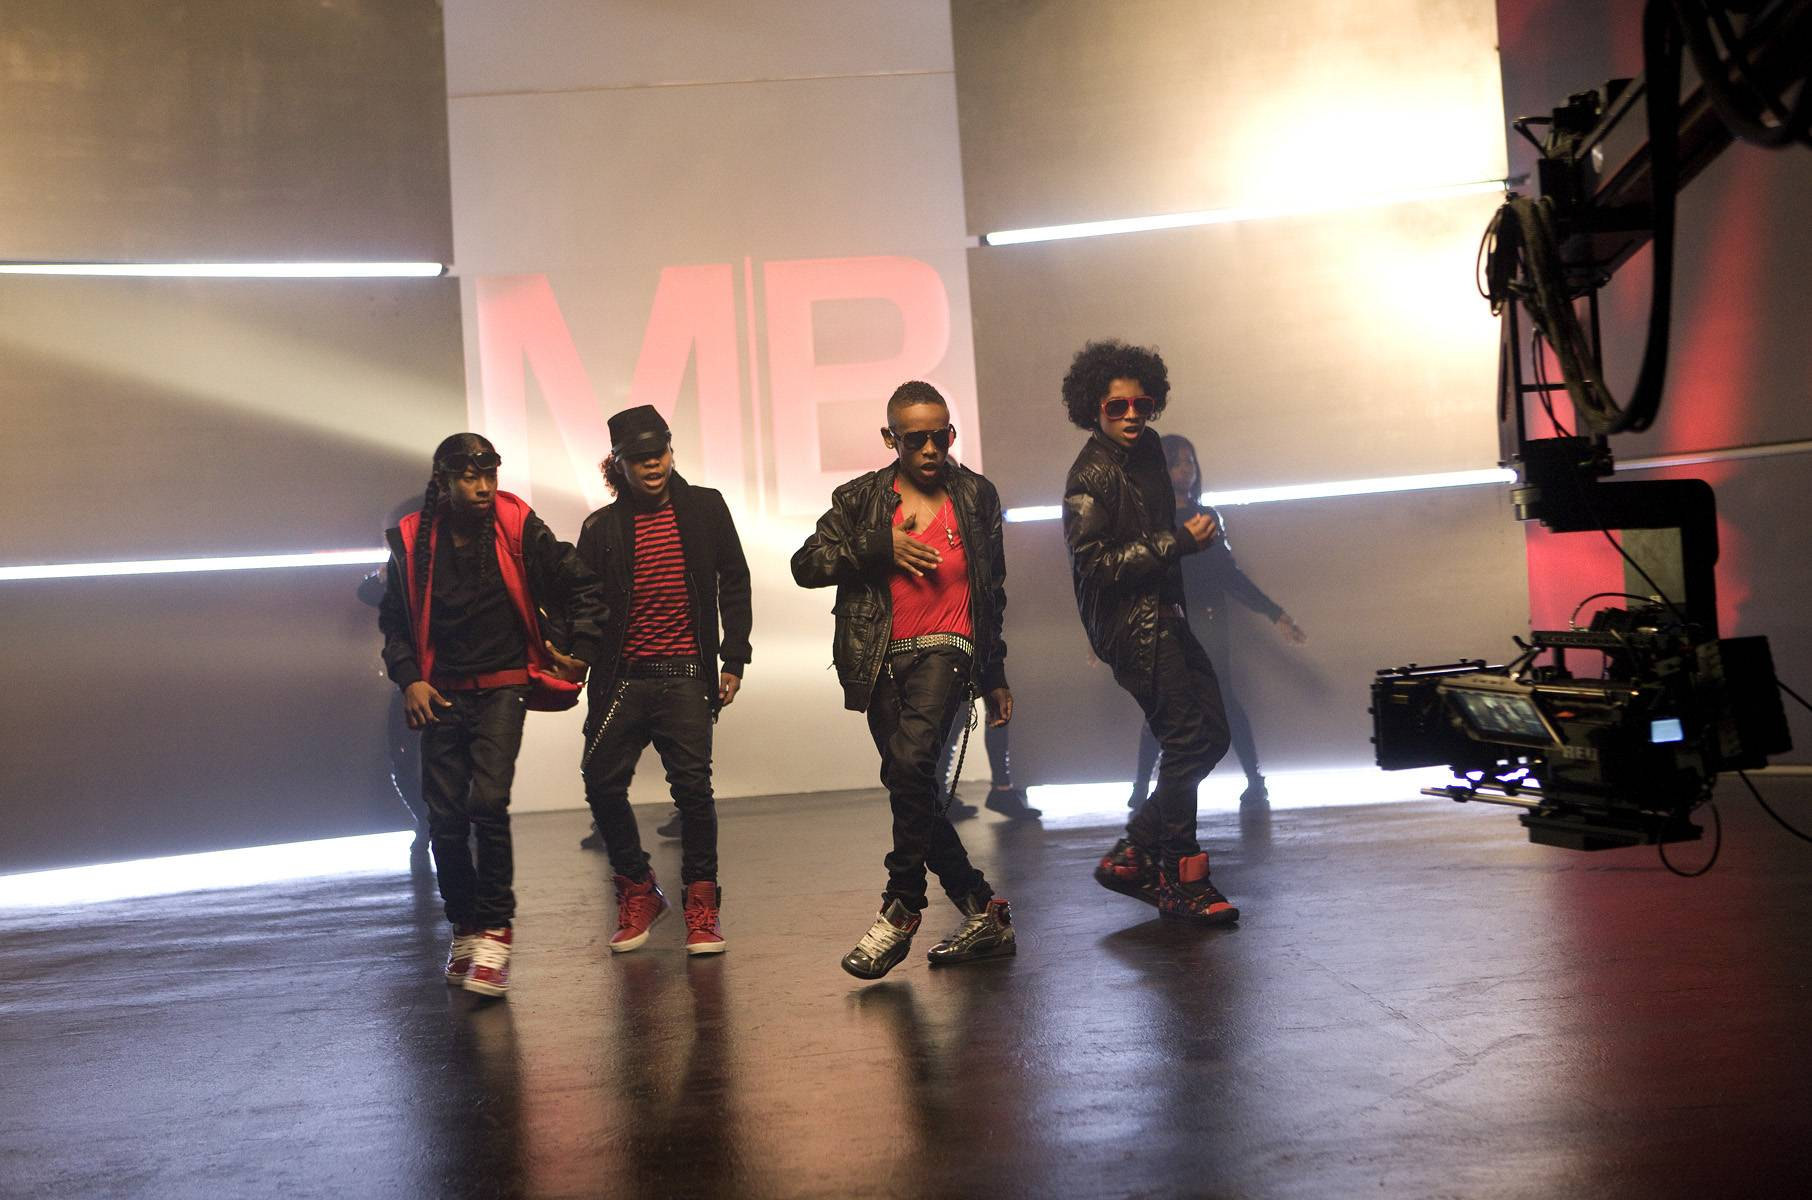 #5. Practice, Practice - To get their dance moves just right, Mindless Behavior practices 8 hours a day.